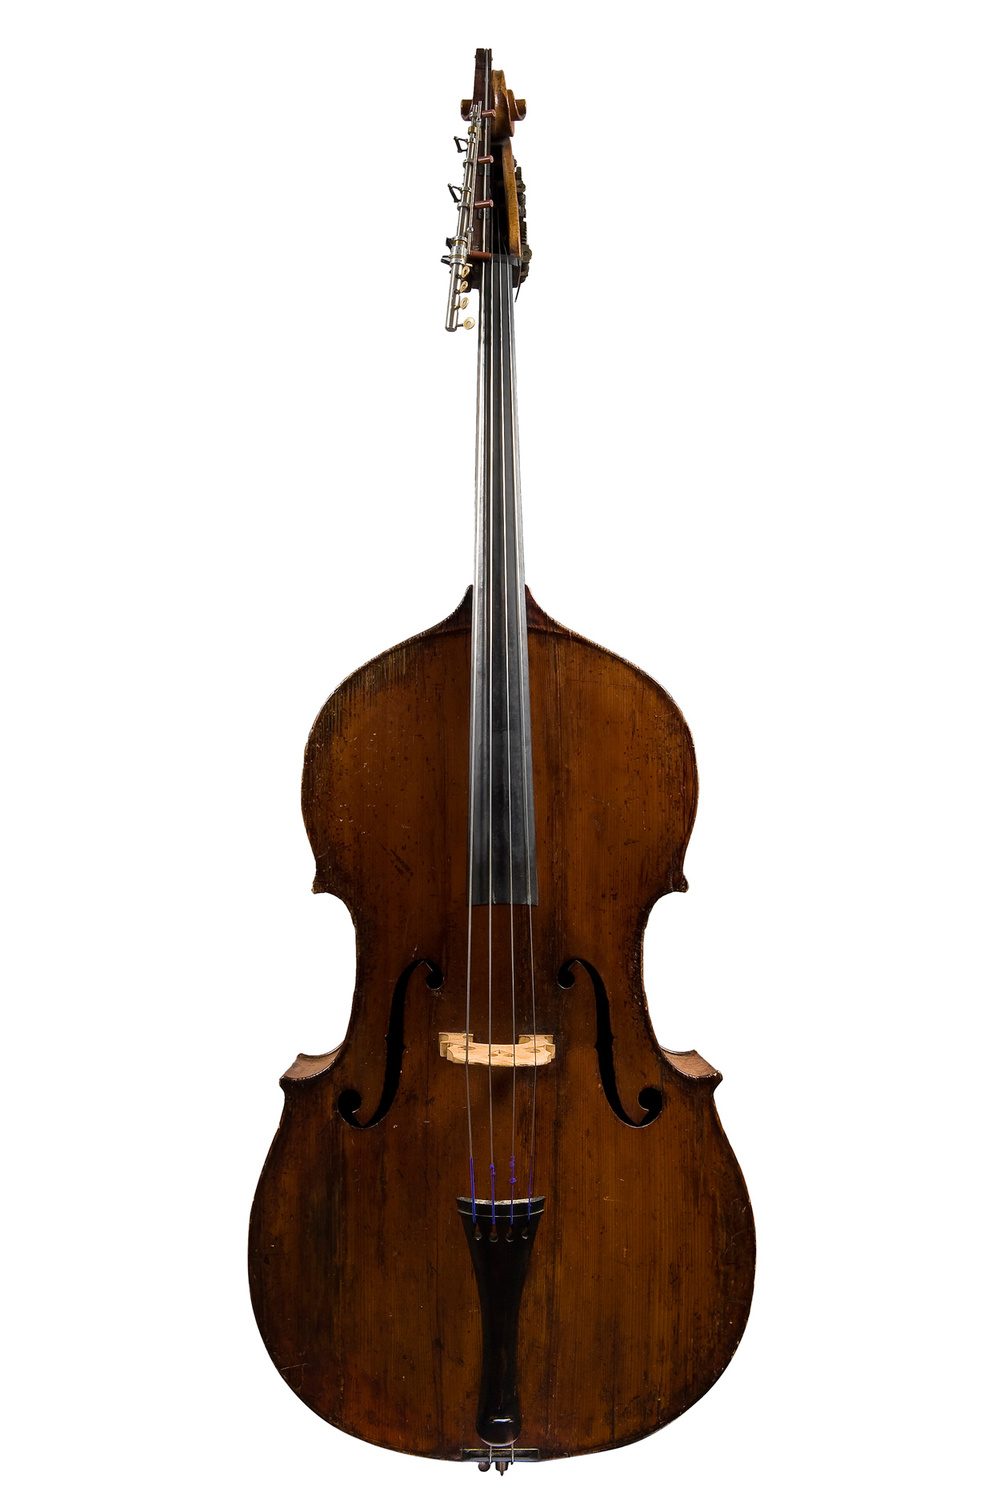 The Double Bass. I've always loved this musical instrument.